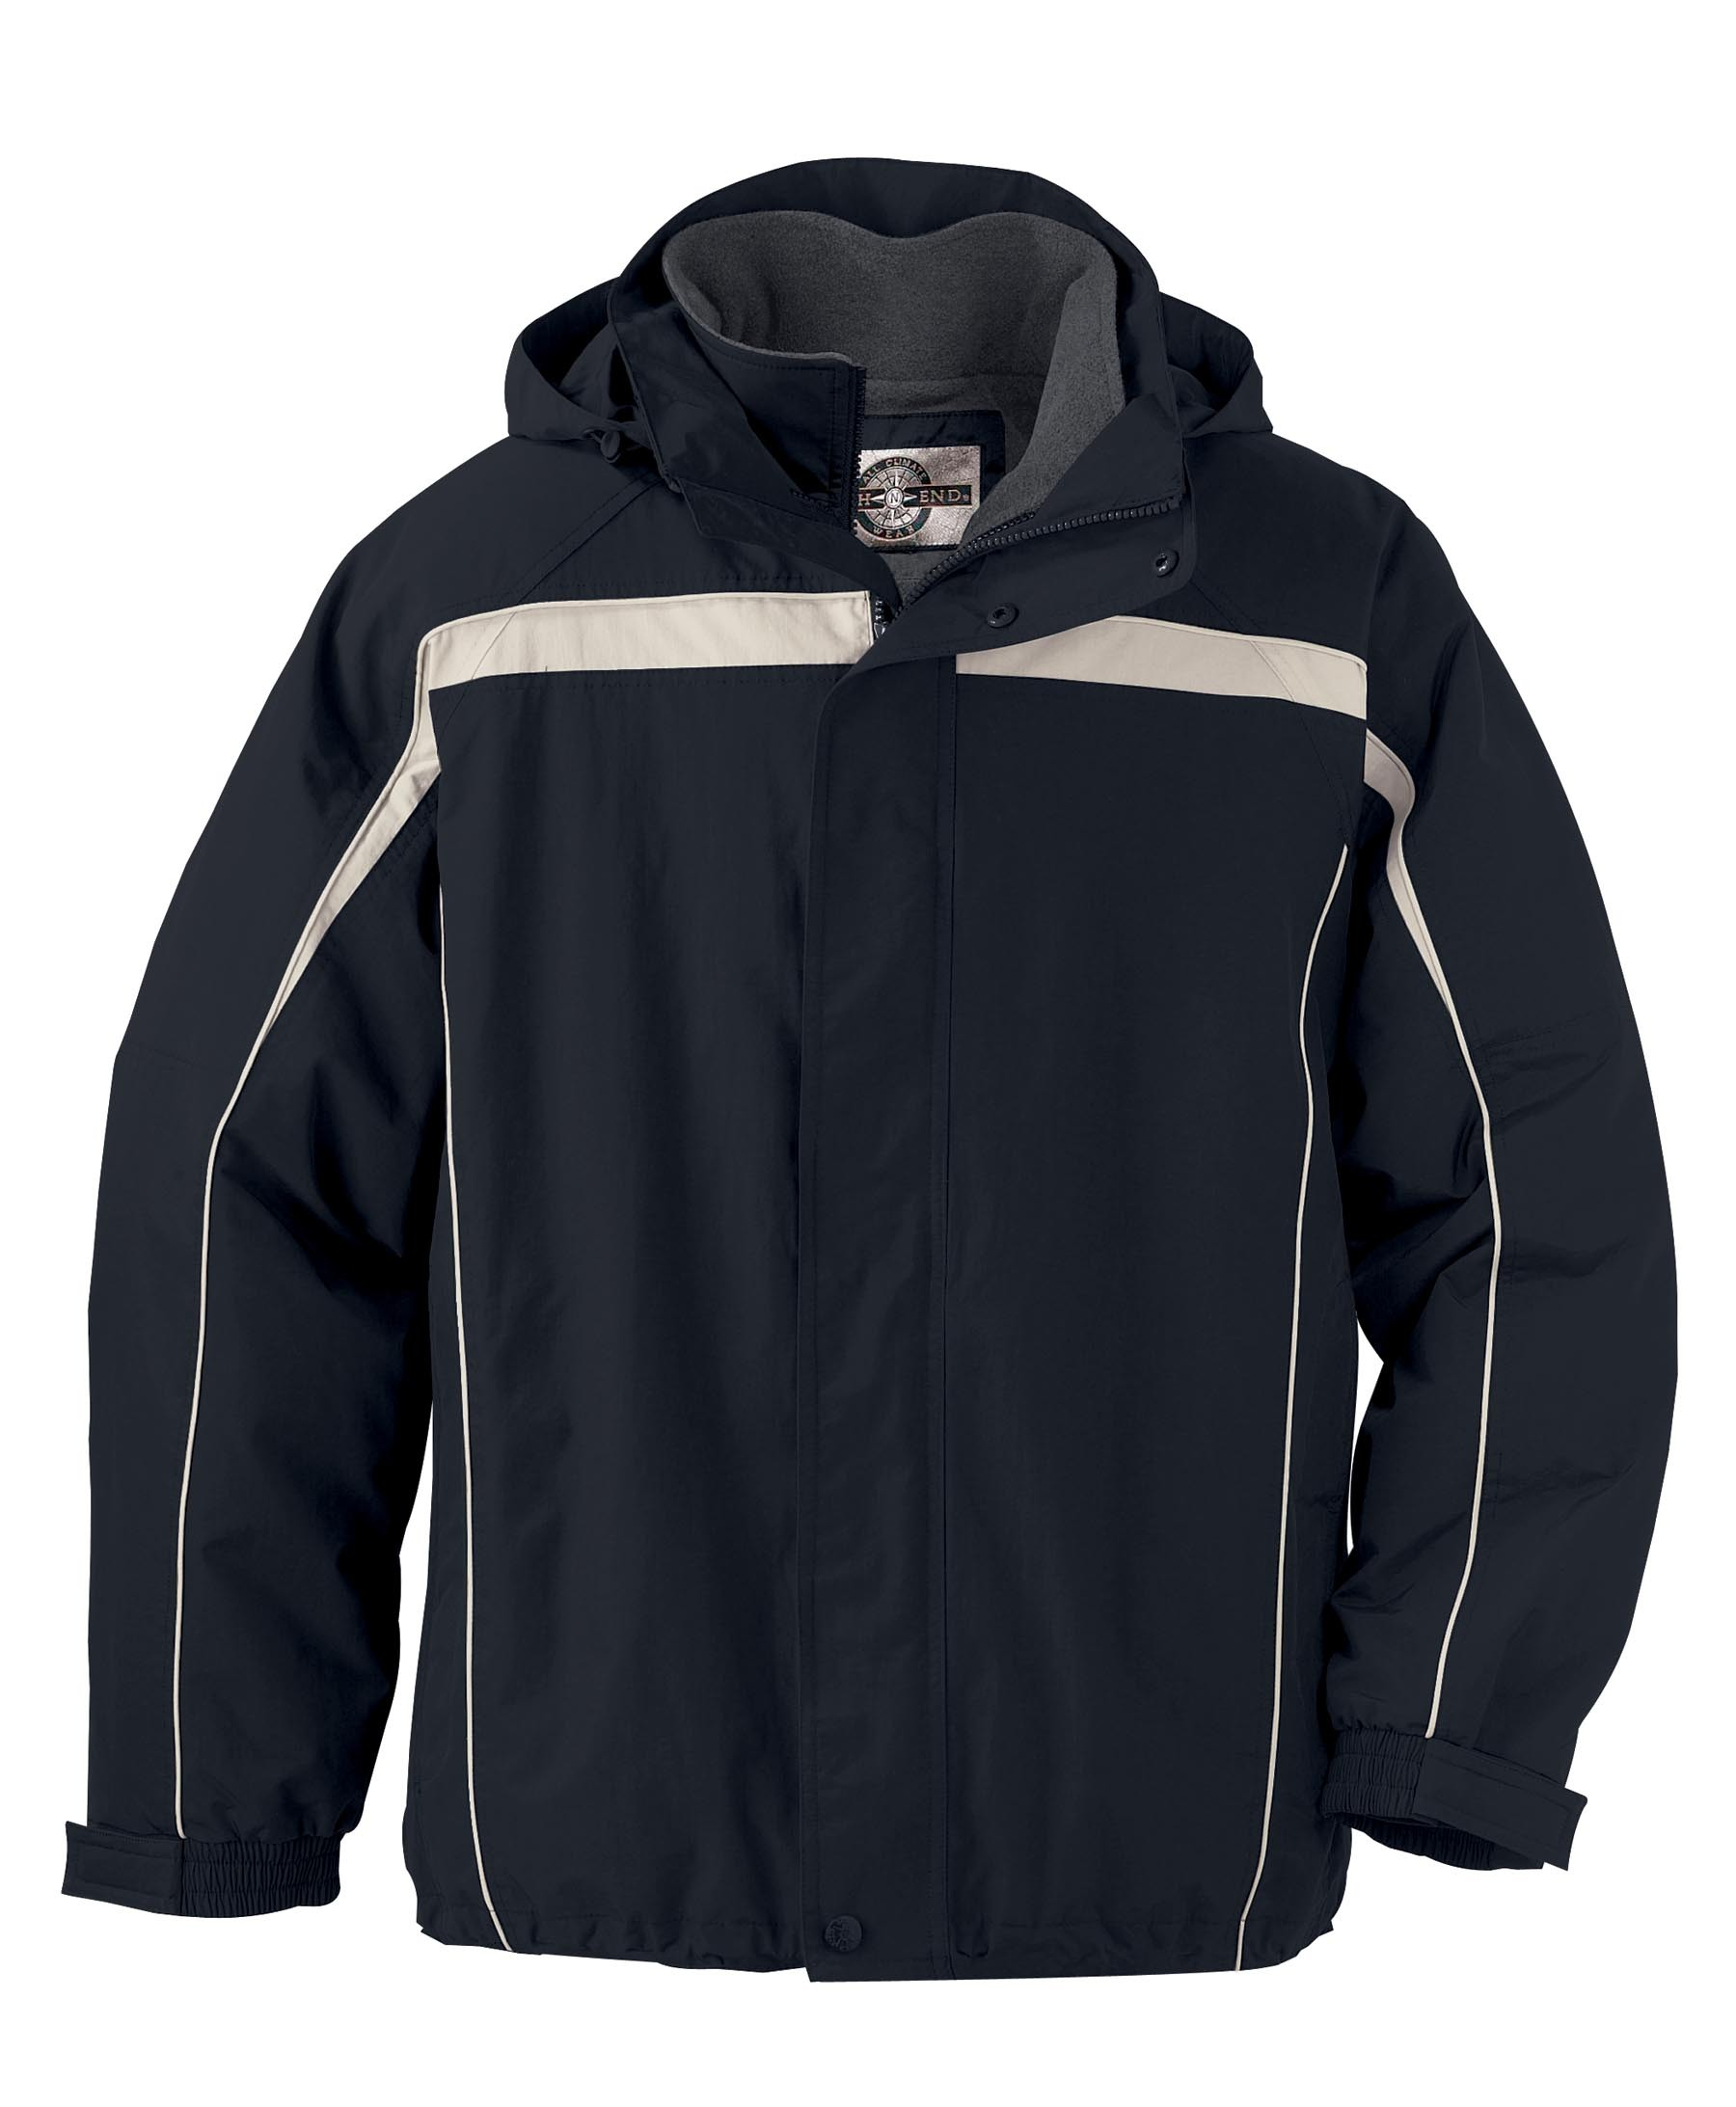 Ash City UTK 2 Warm.Logik 88079 - Men's 3-In-1 Jacket With Detachable Jacket Liner